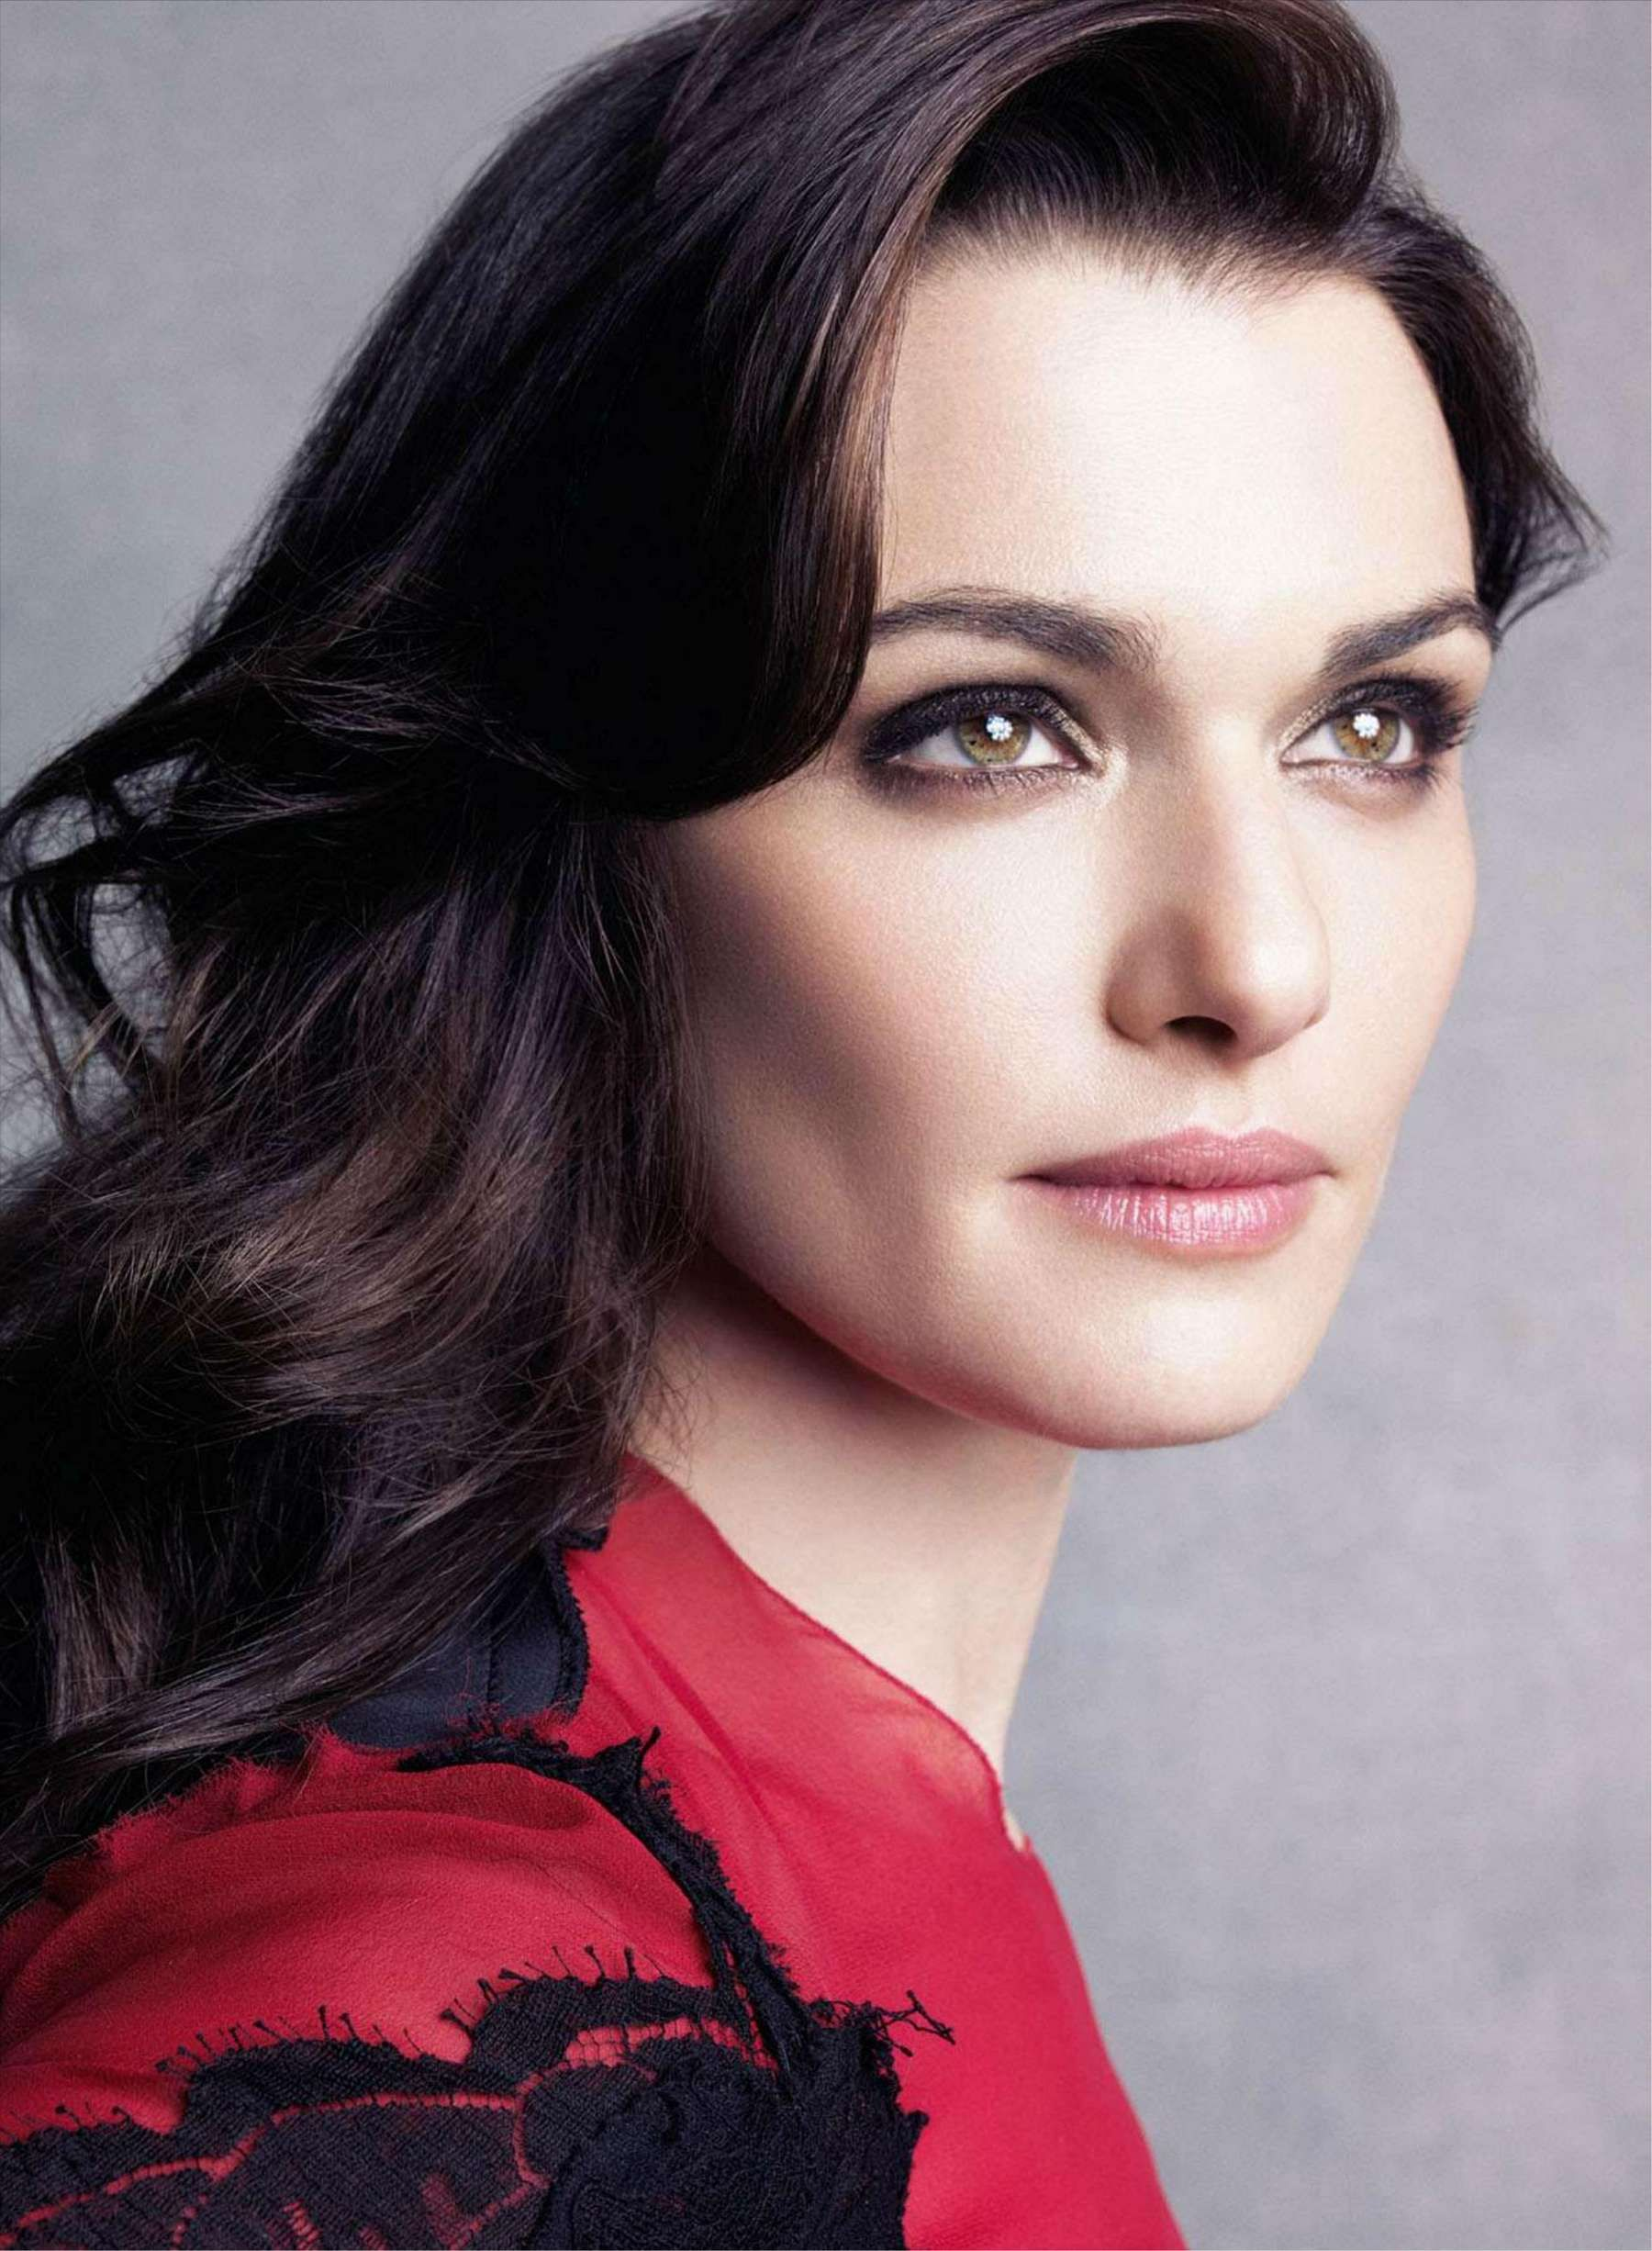 Discussion on this topic: Matika Arthakornsiripho, rachel-weisz-born-1970-naturalized-american-citizen/